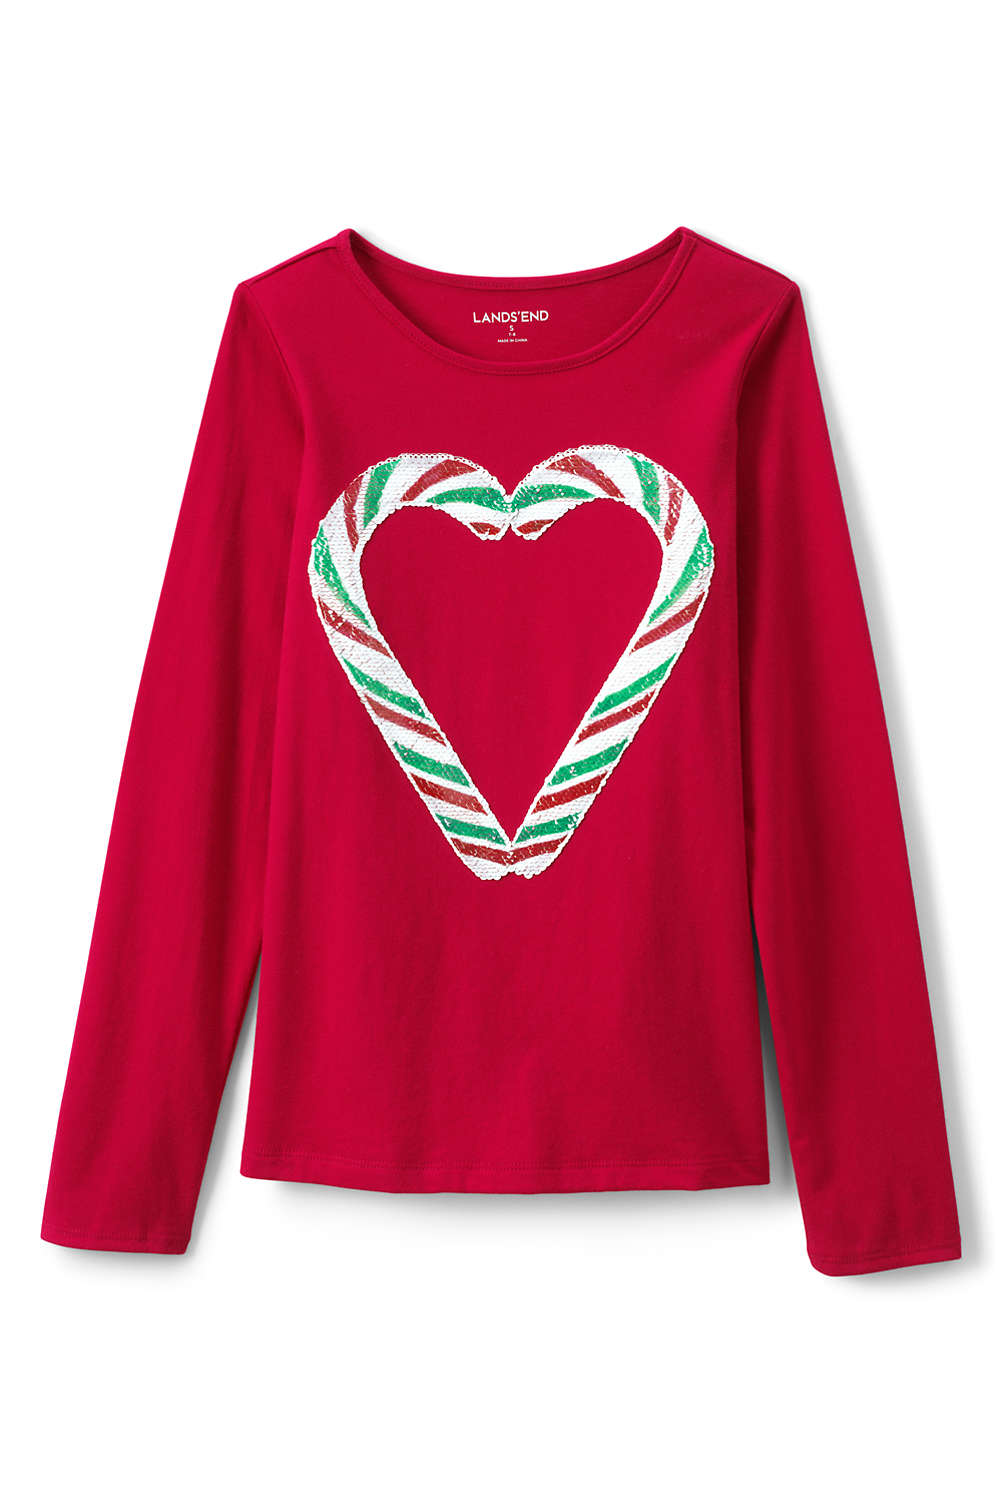 6597b7106f4 Girls Holiday Embellished Graphic Tee from Lands  End